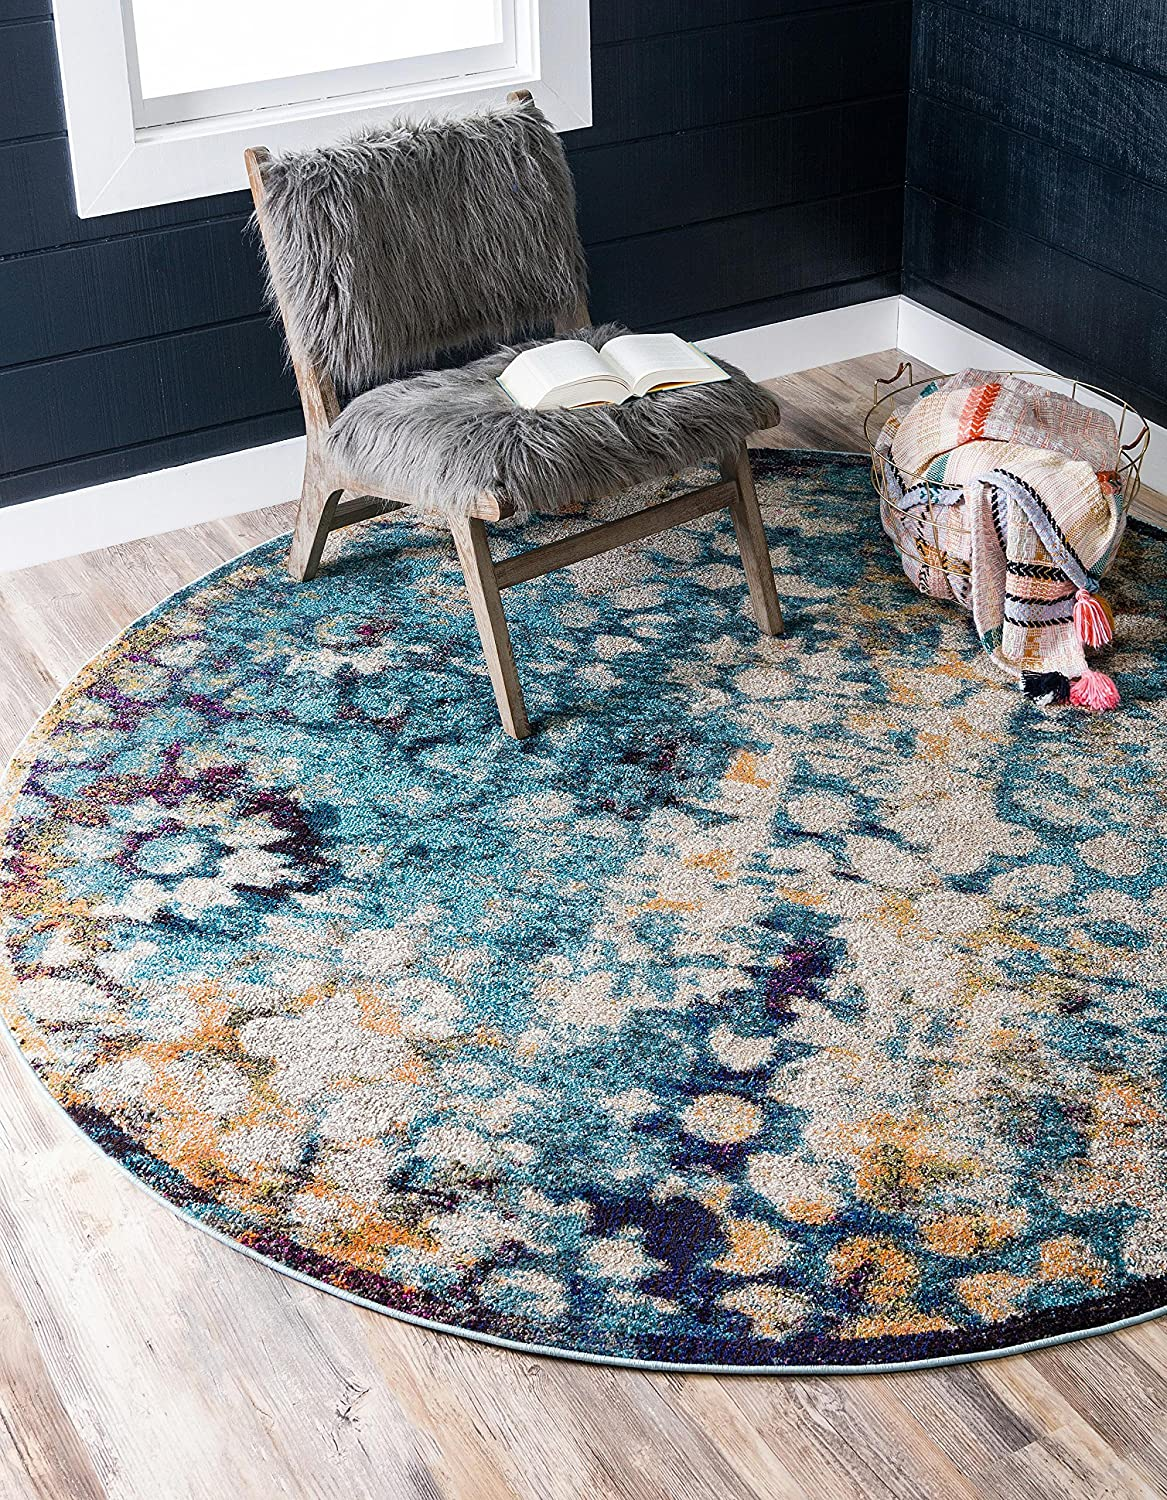 Unique Loom Vita Collection Traditional Over-Dyed Vintage Blue Round Rug (8' 0 x 8' 0)